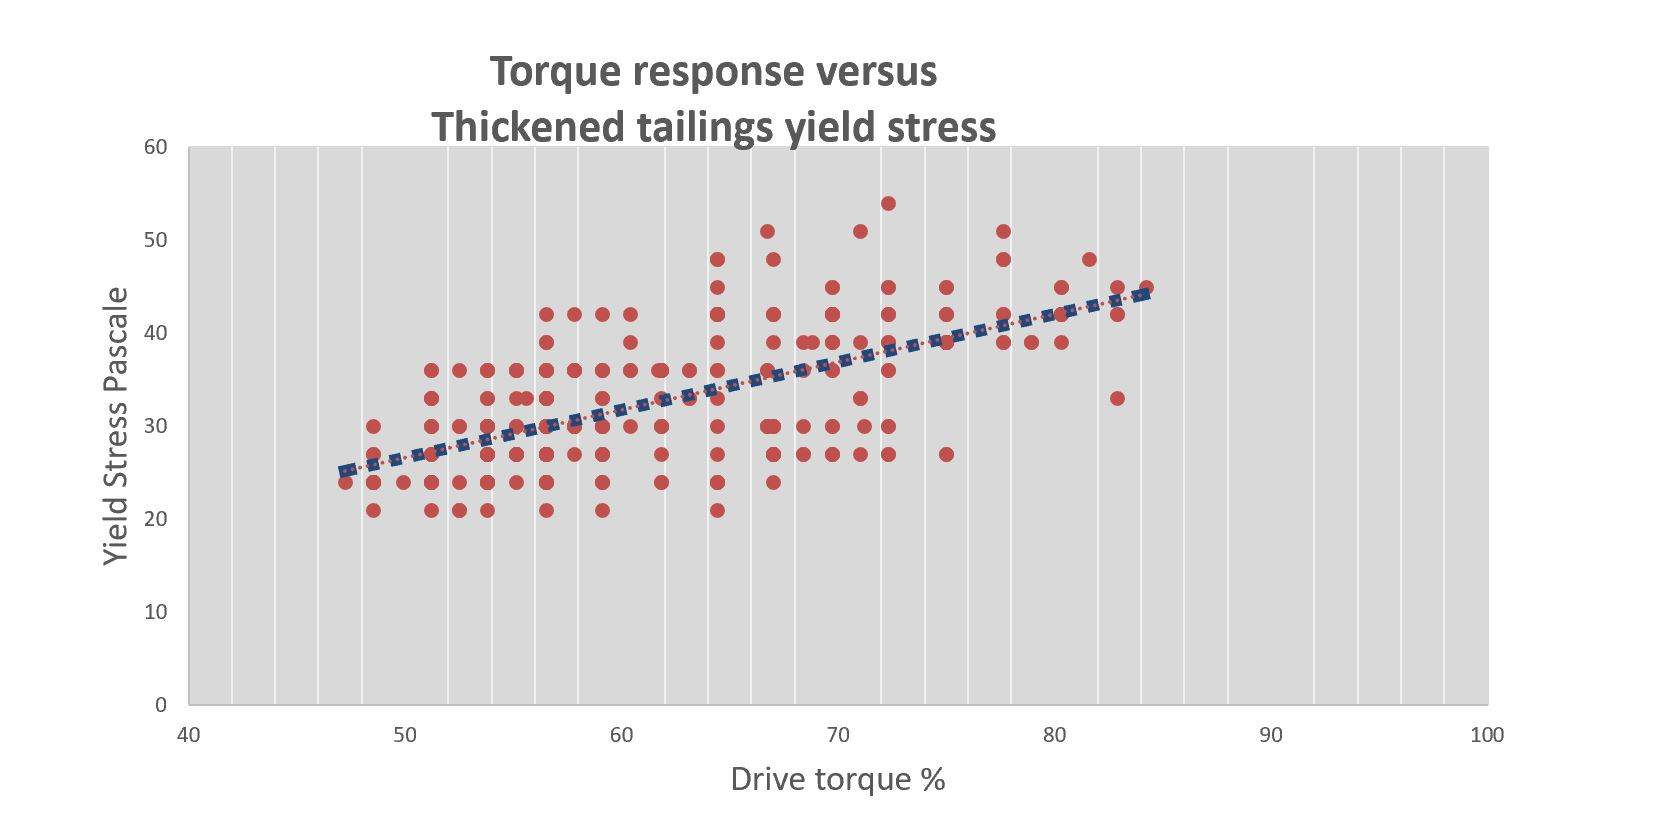 tailing thickener performance _thickened tailings yield stress